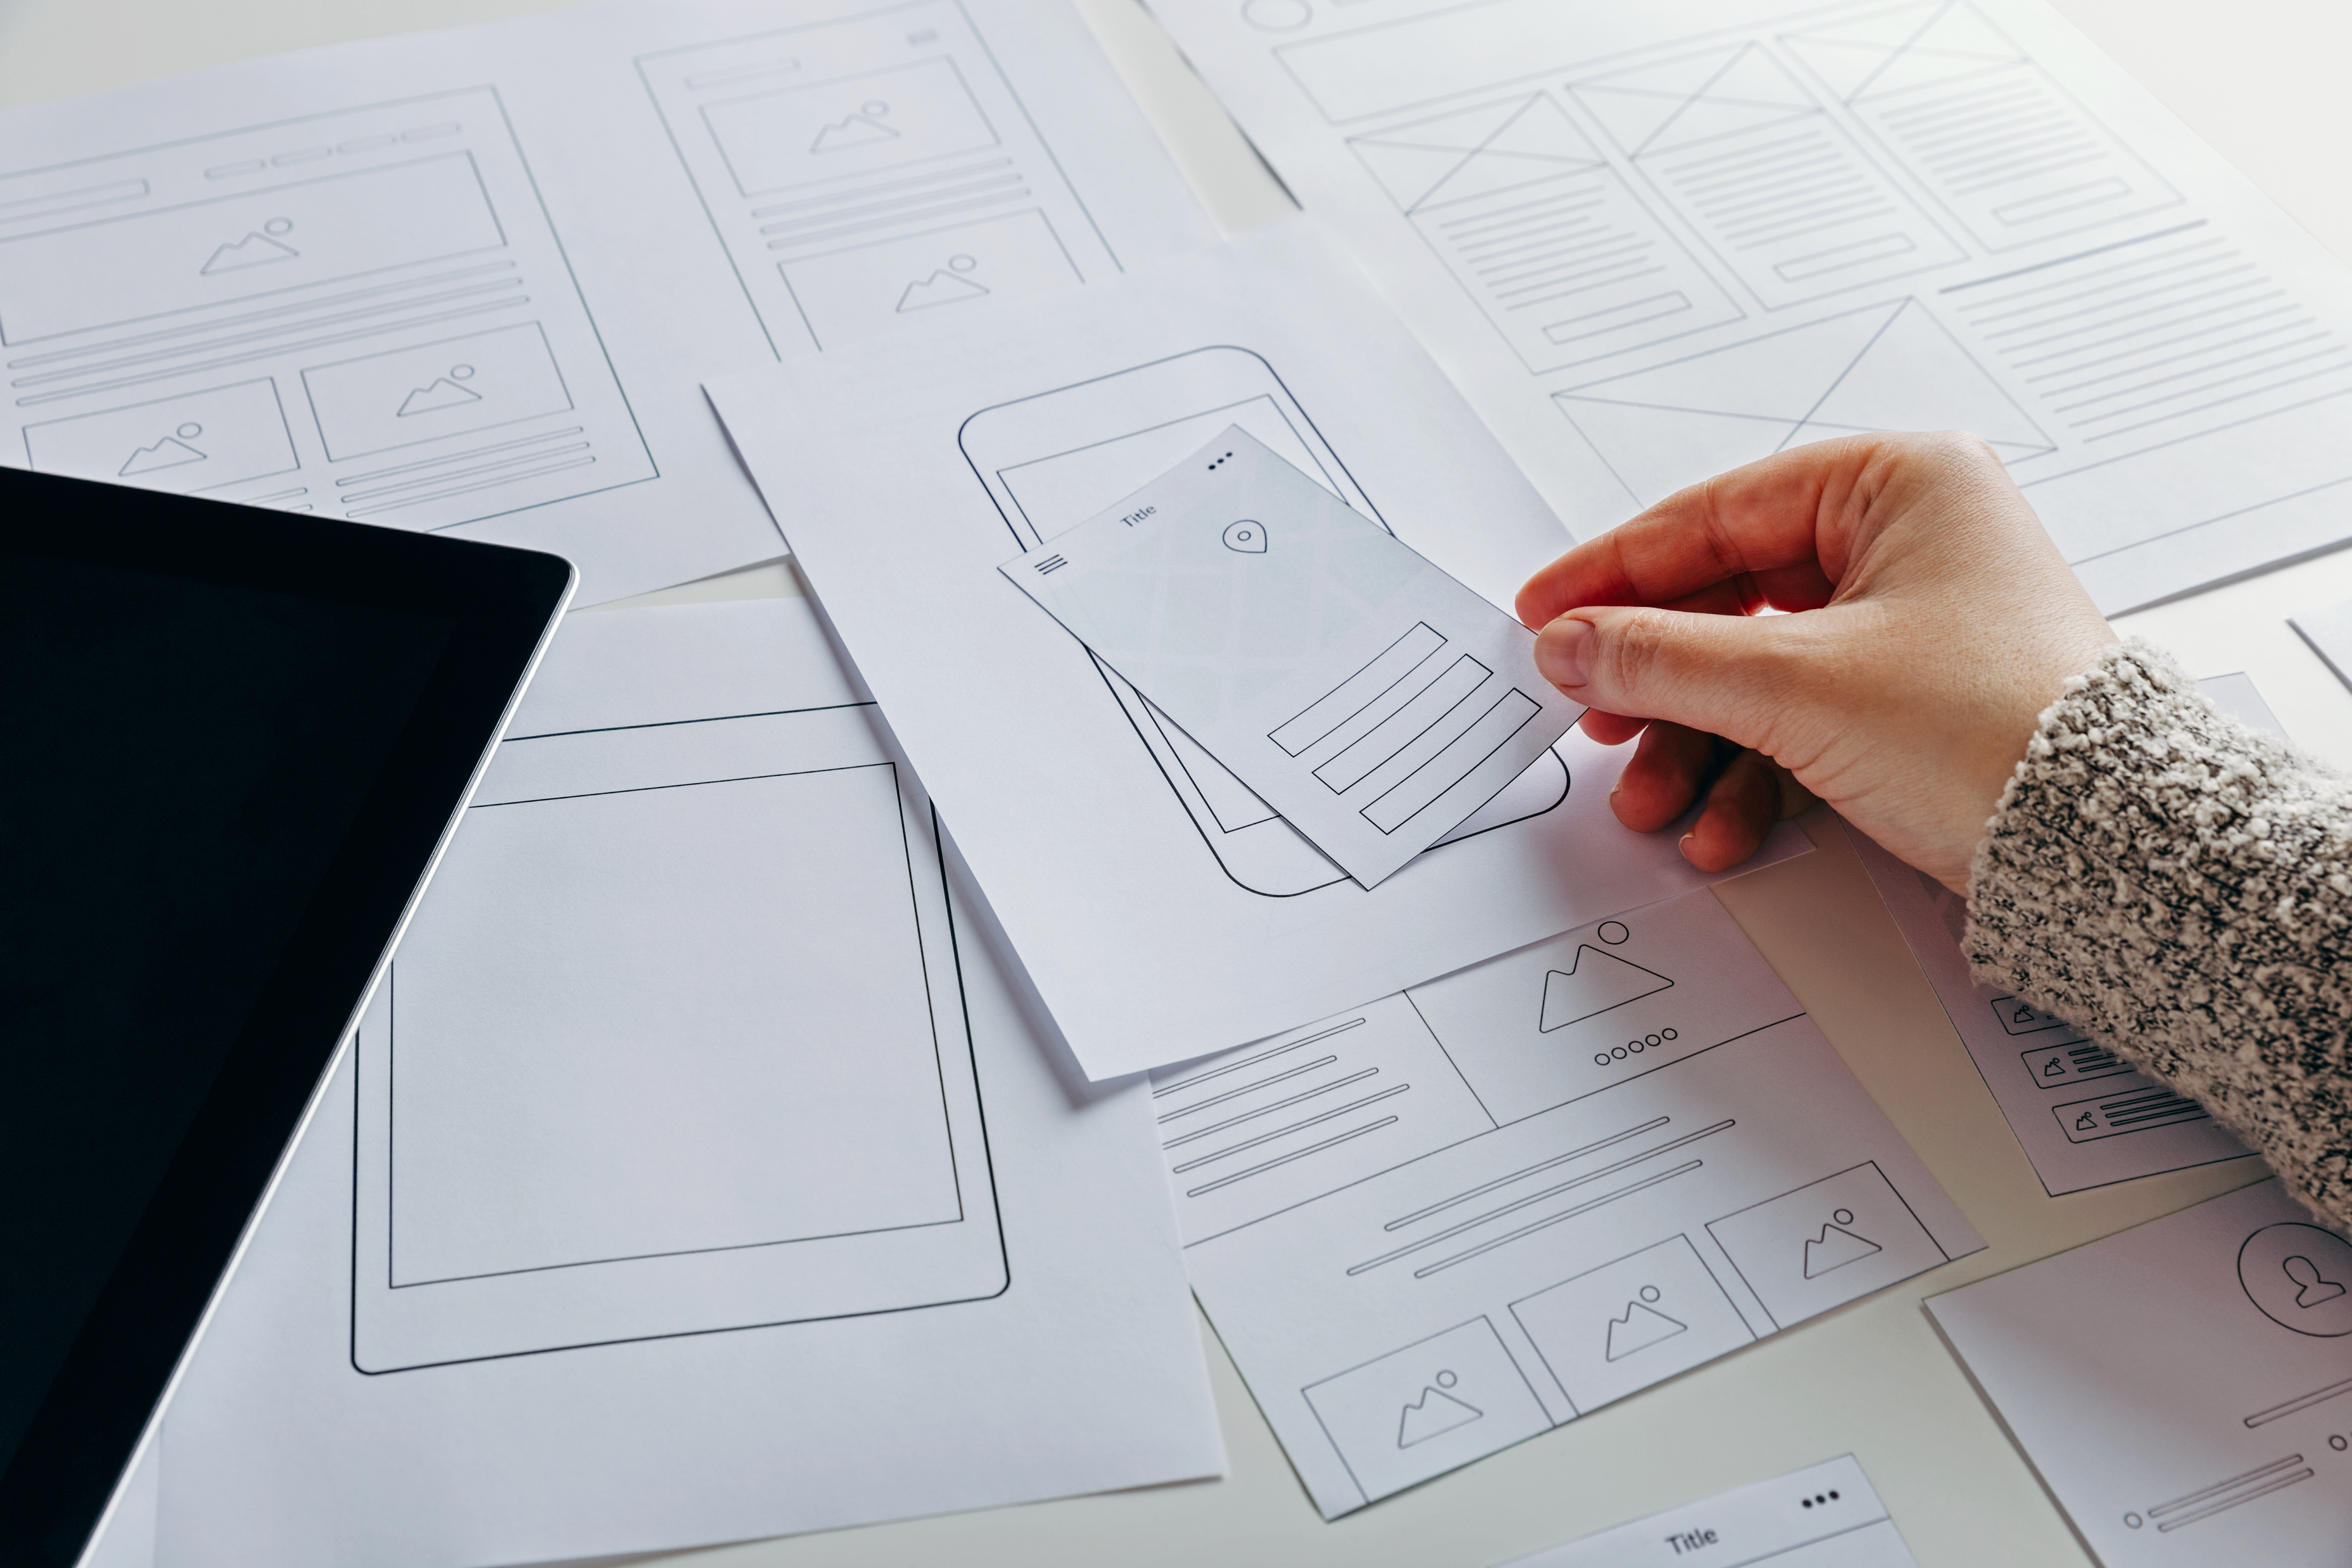 UX from a content design perspective